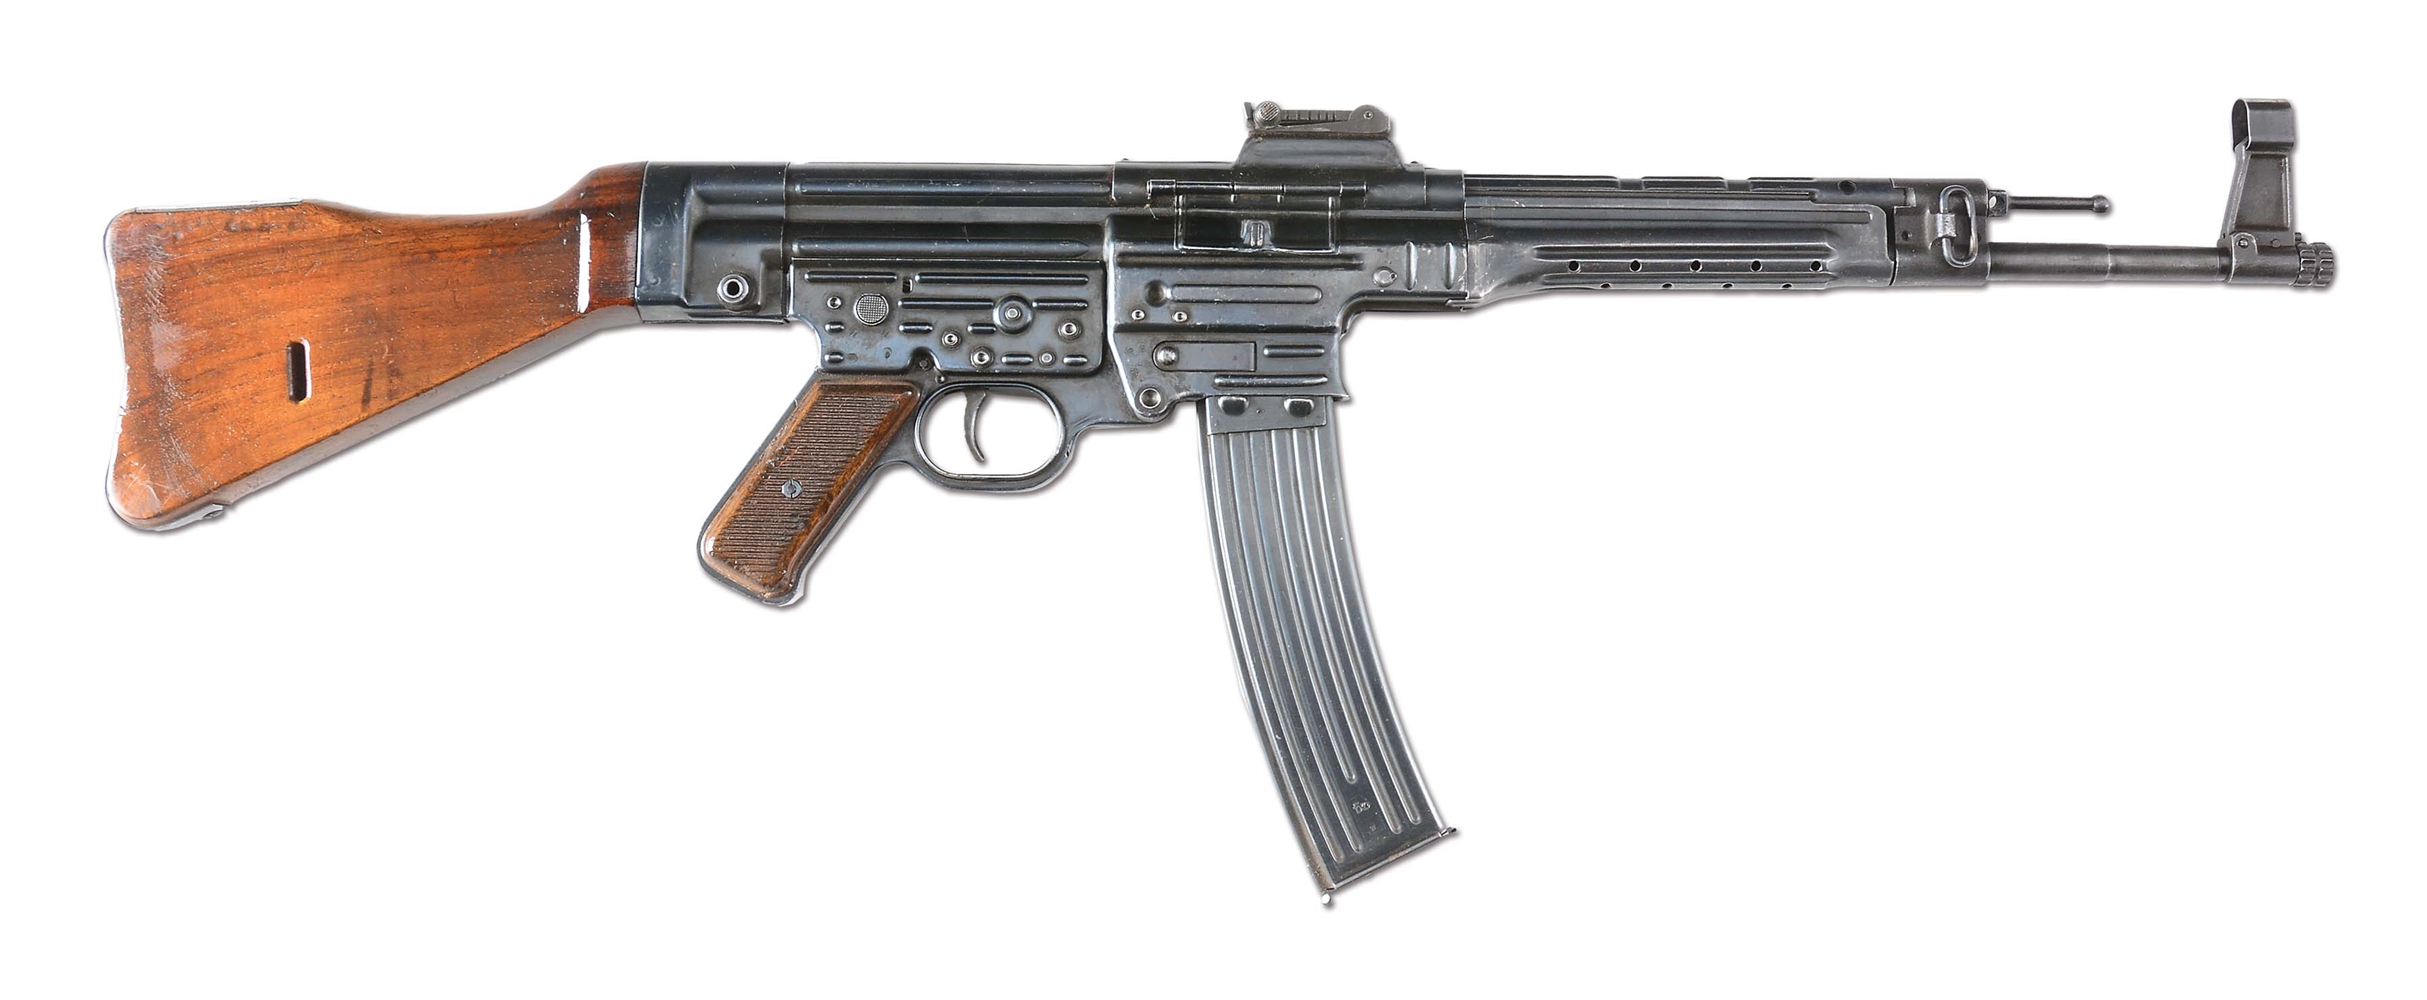 (N) VERY FINE ORIGINAL GERMAN MP-44 MACHINE GUN (CURIO & RELIC).